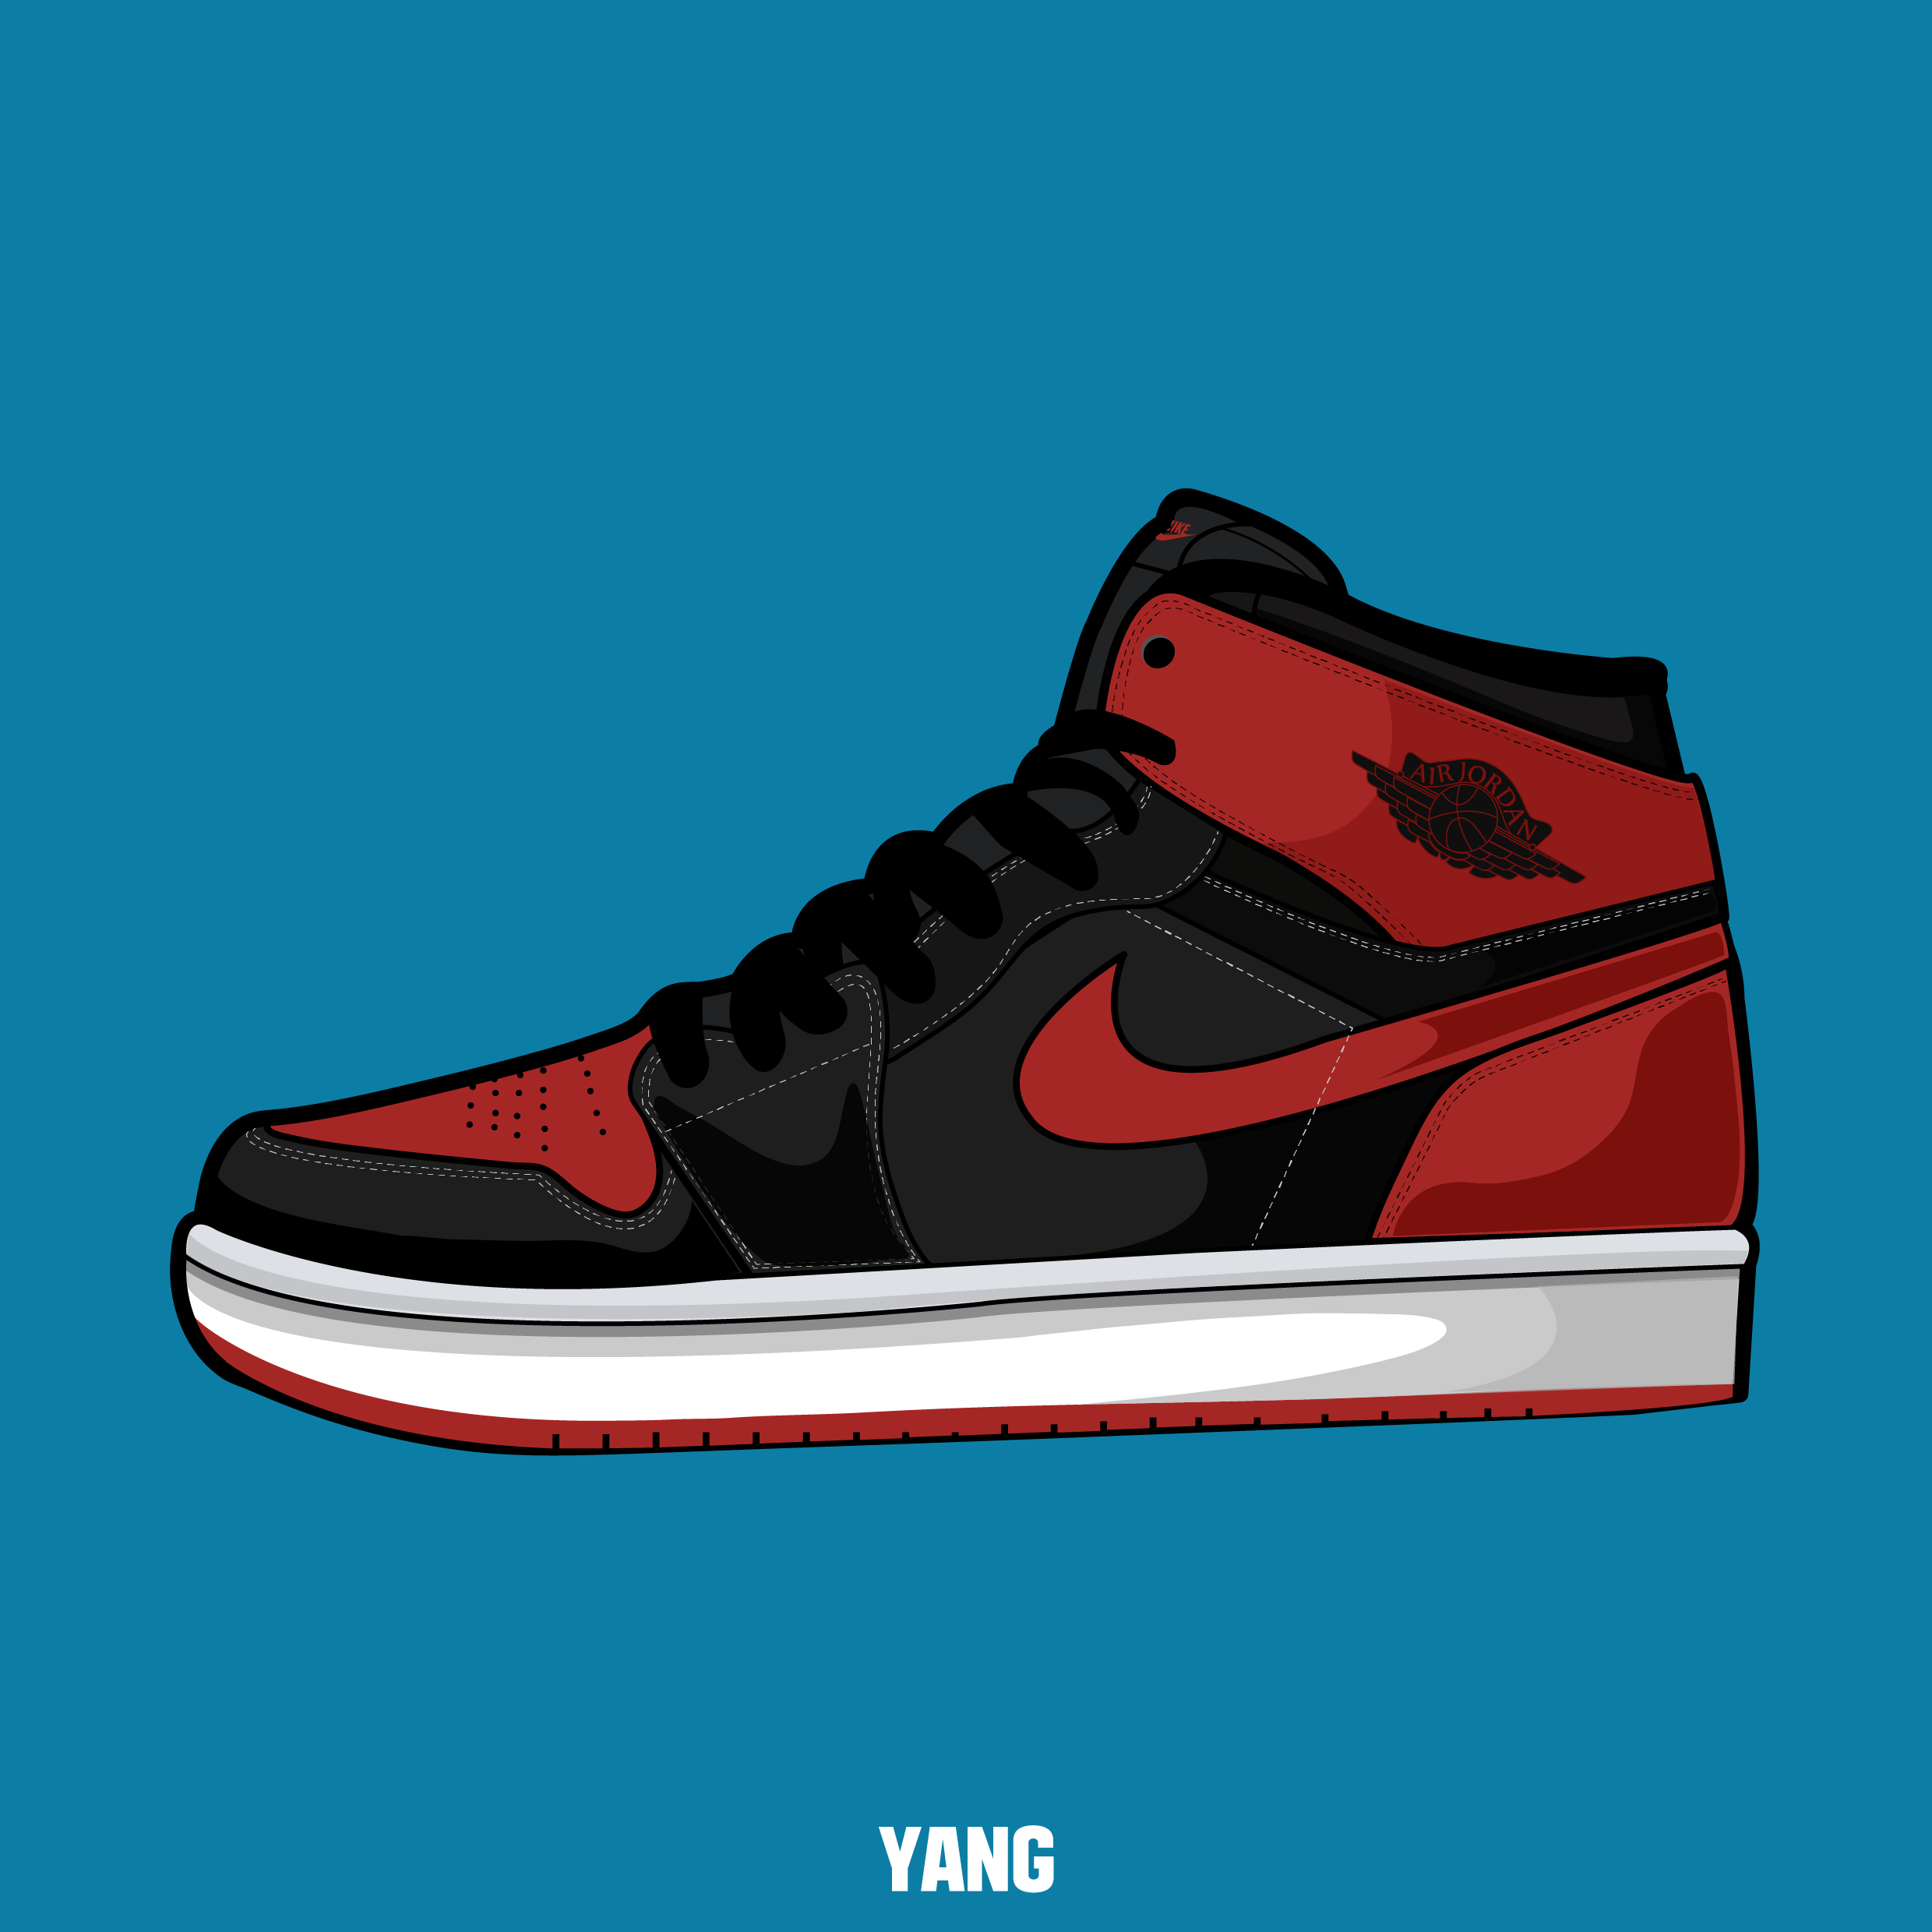 drawing, shoes, sneakers, nike, air, jordan,graphic, design,